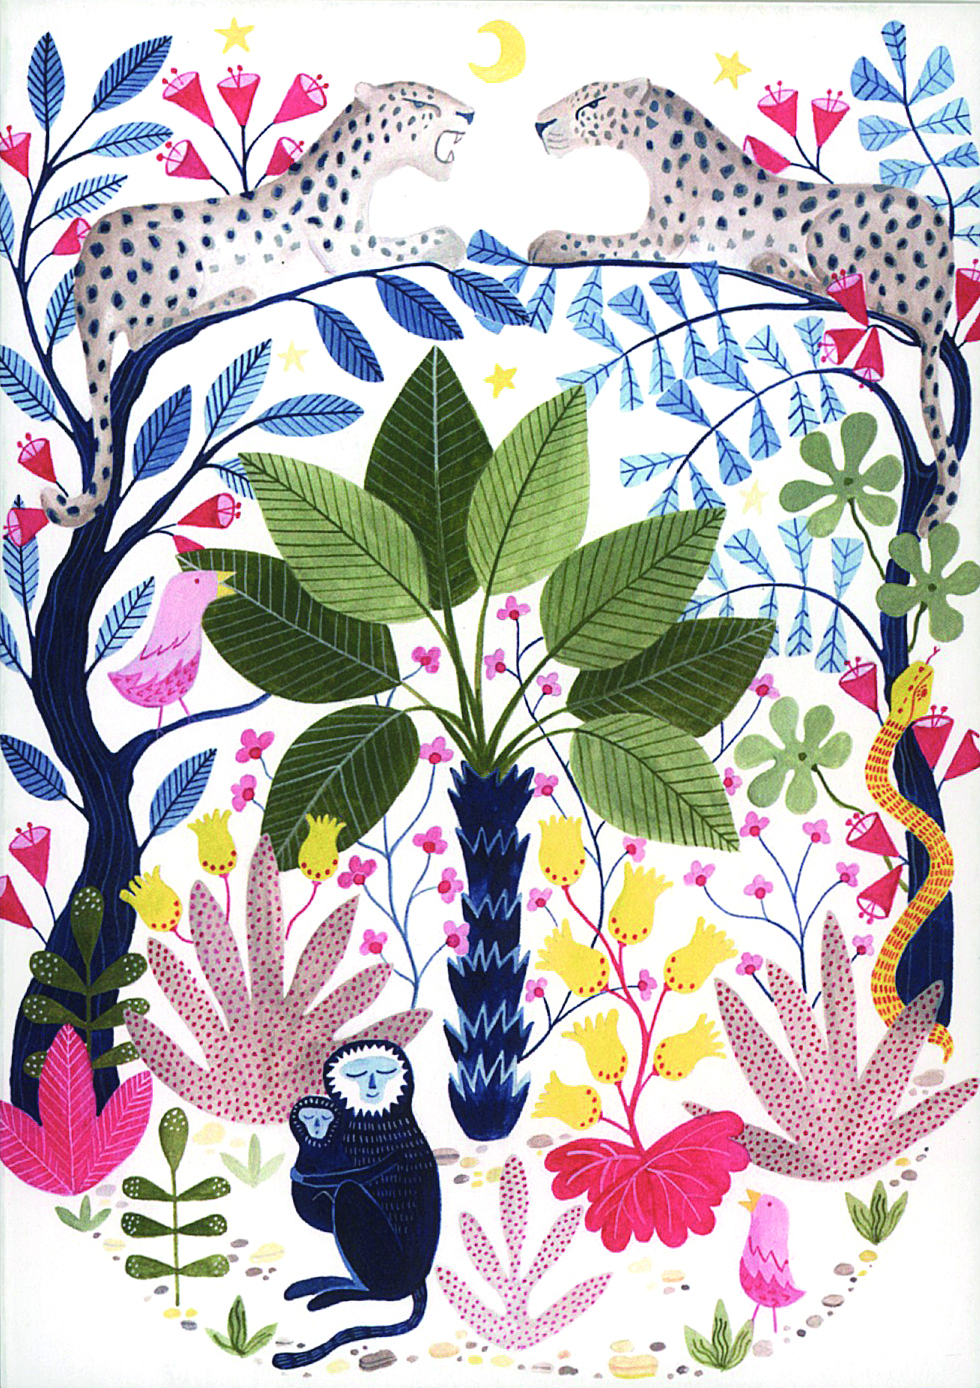 Above: Characterful animals and tropical flora feature in Bex Parkin's work which features on cards from Earlybird.